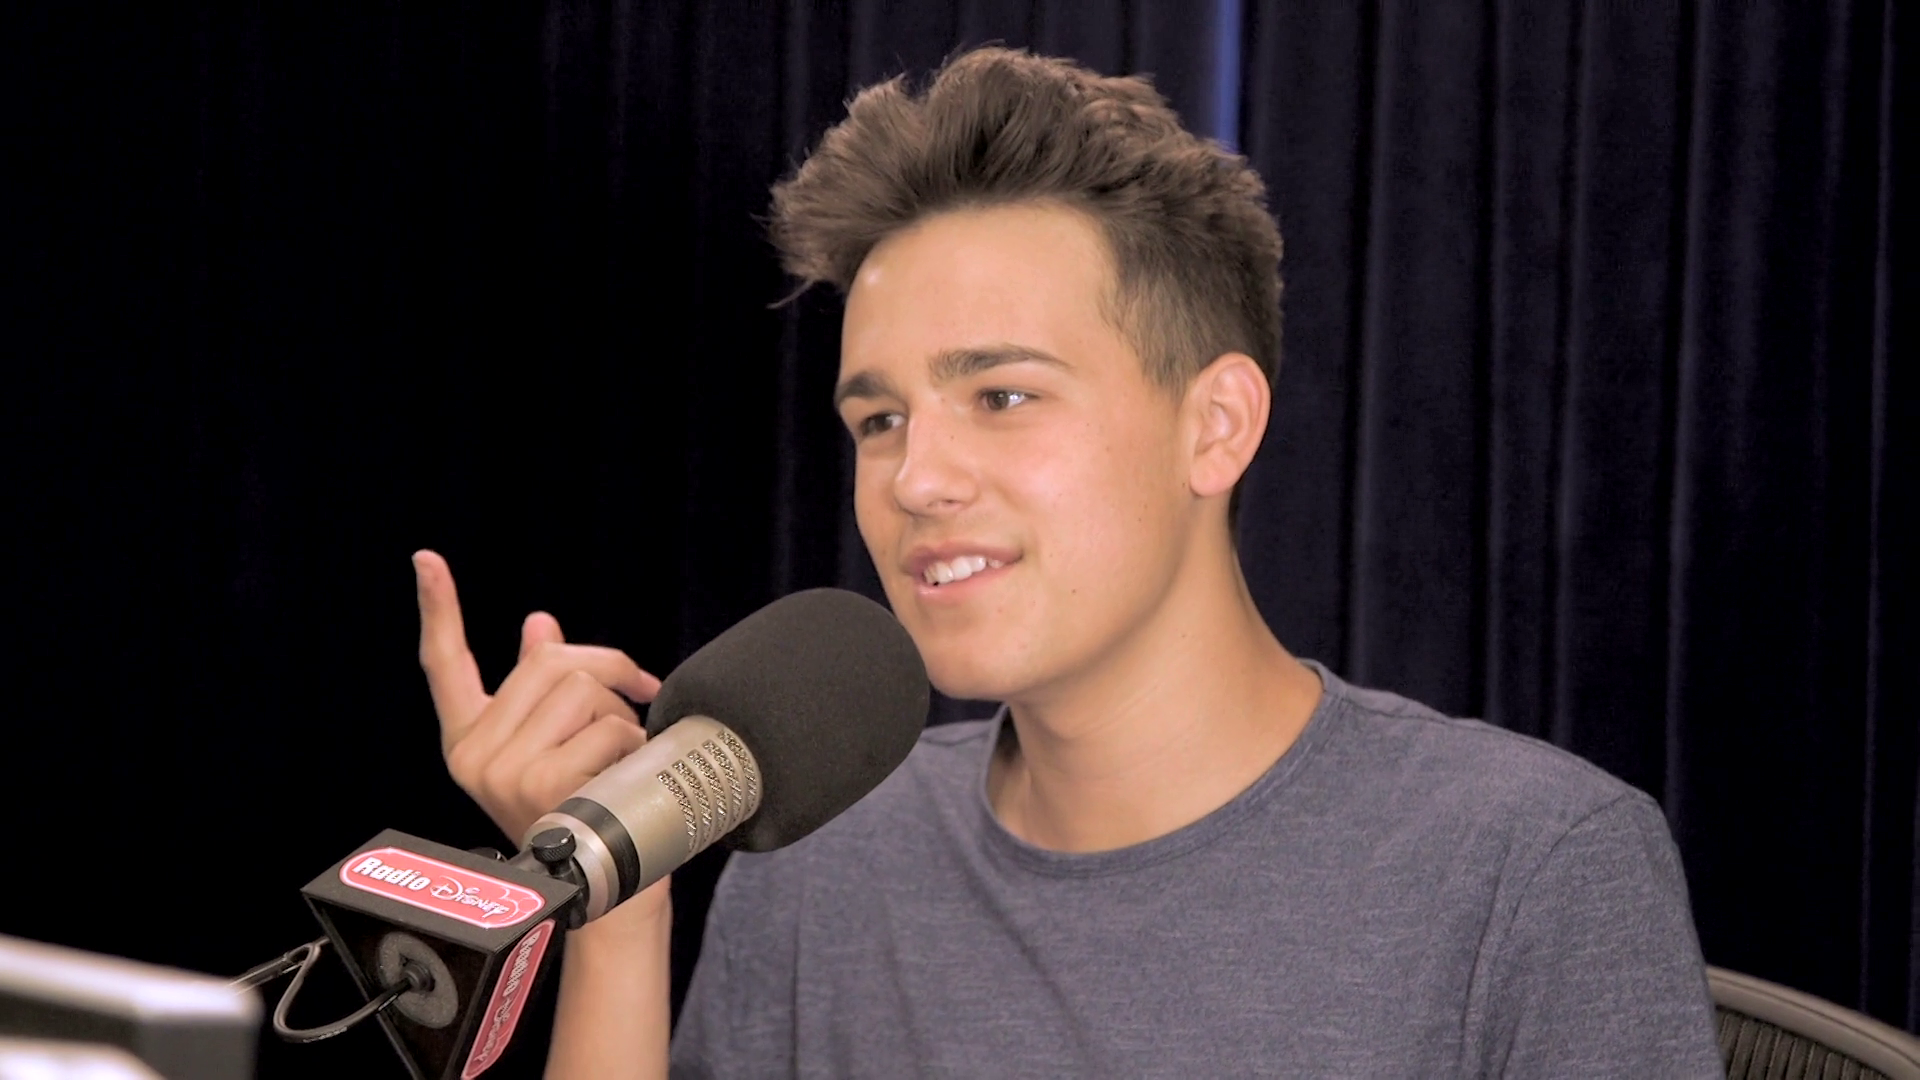 Jacob Whitesides on How to Take a Selfie - Radio Disney